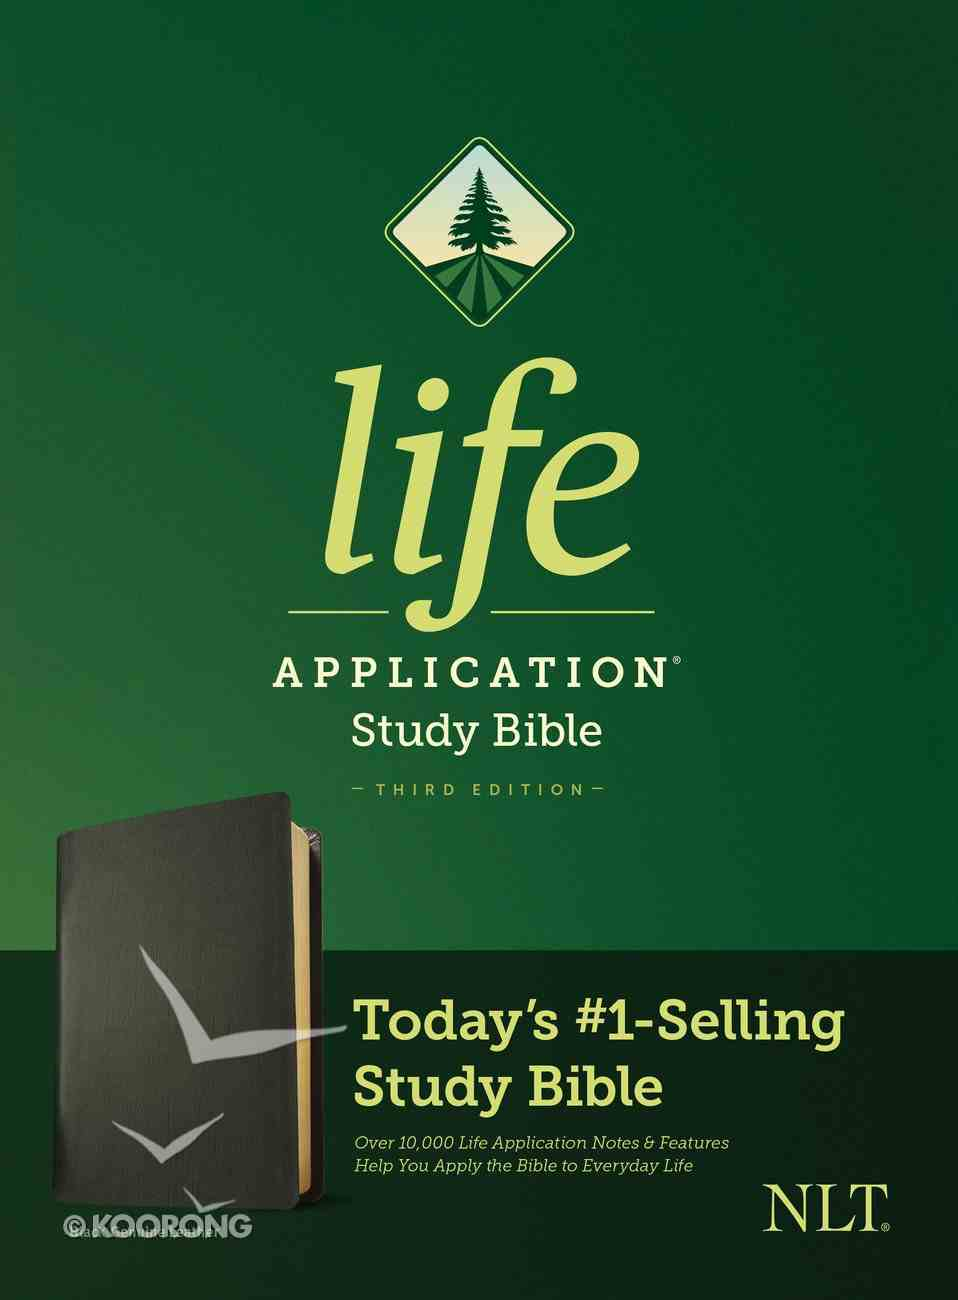 NLT Life Application Study Bible 3rd Edition Black (Black Letter Edition) Genuine Leather